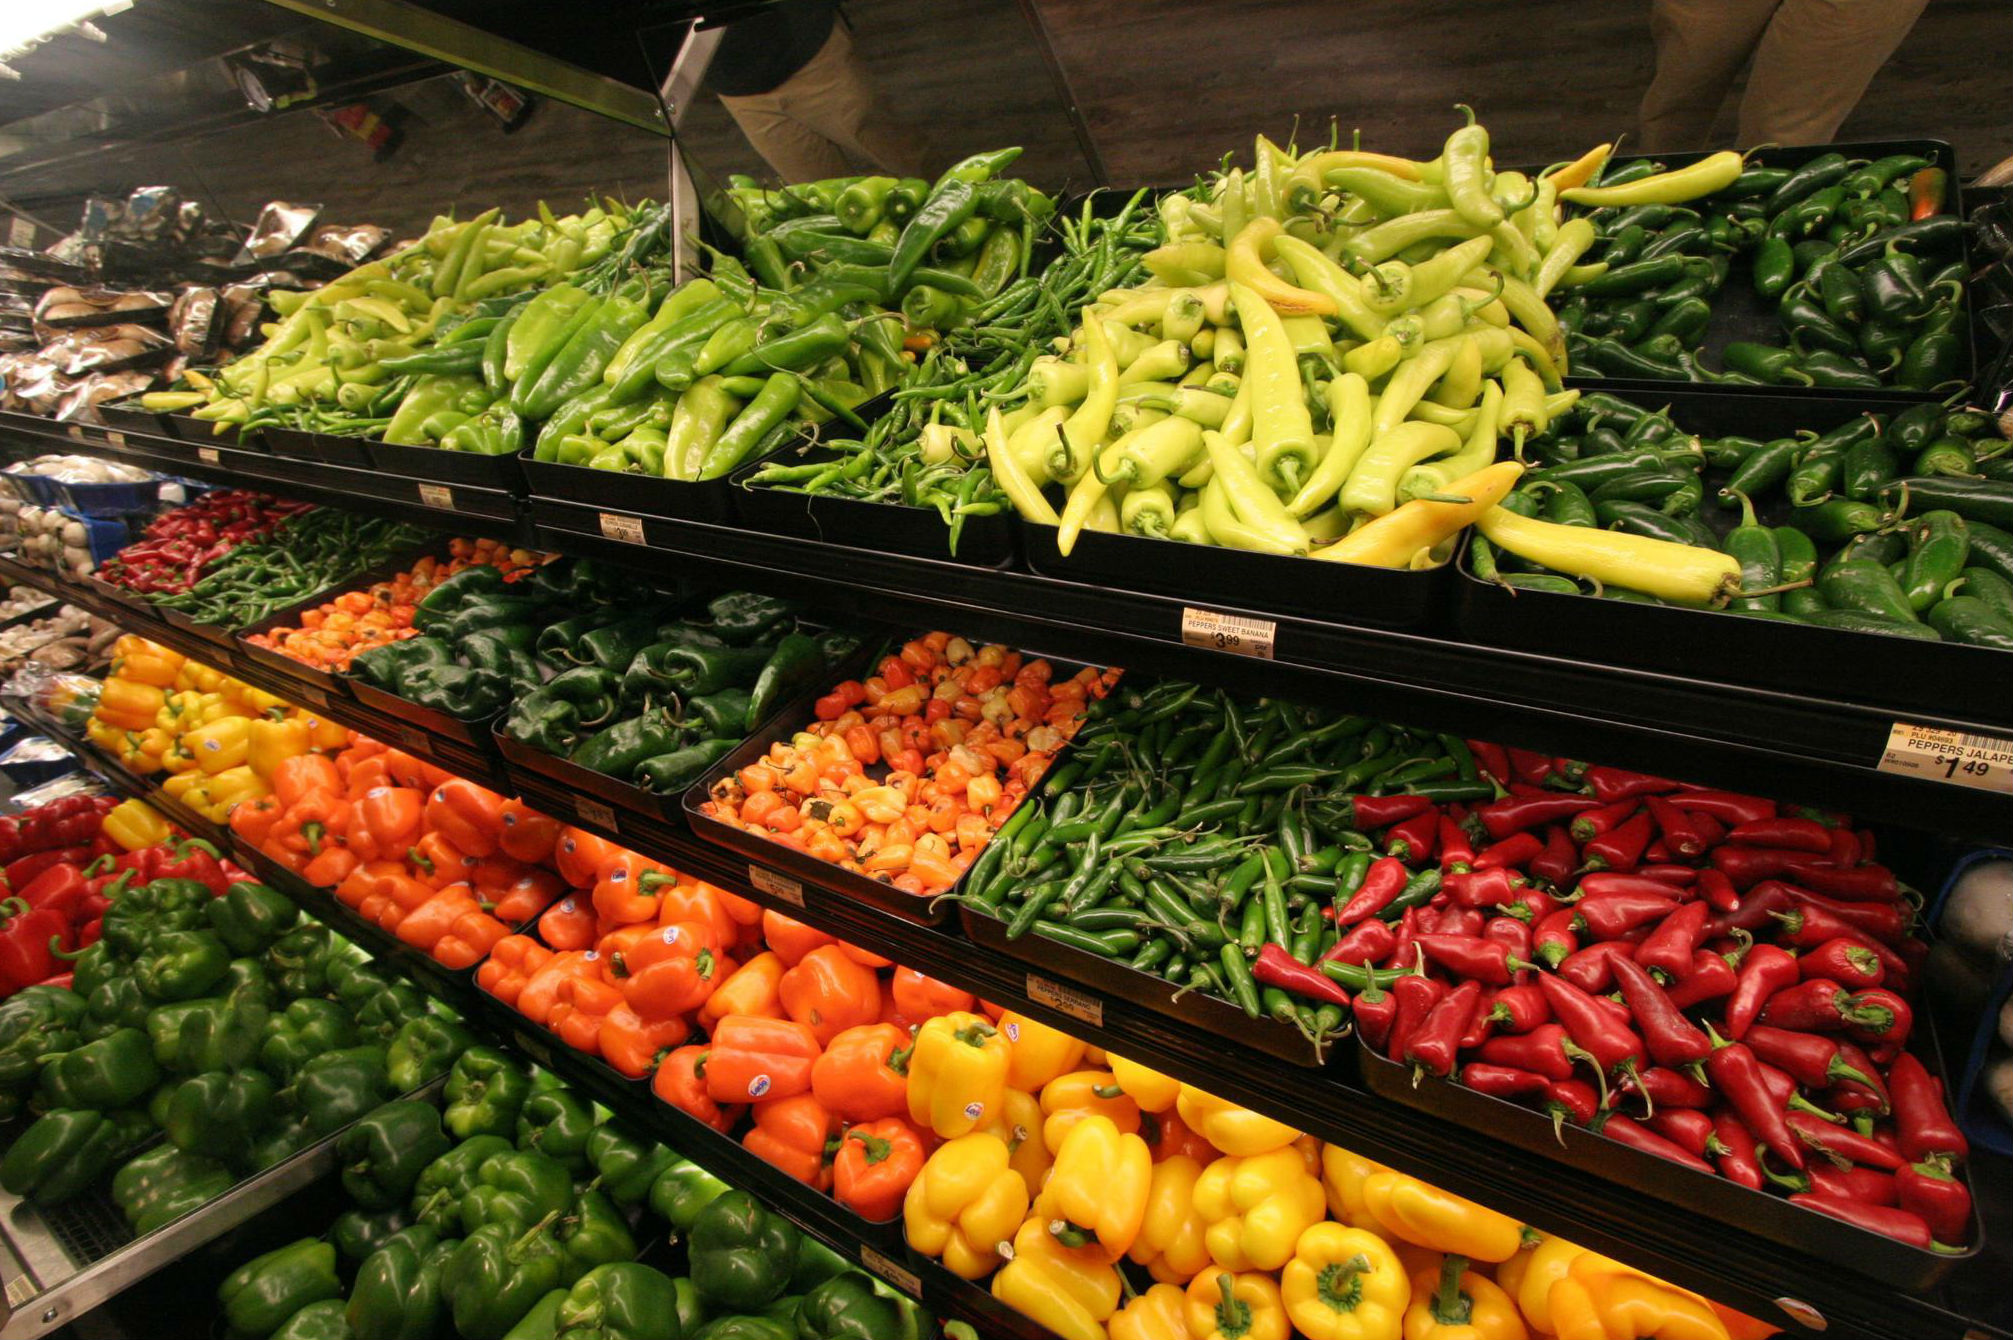 Fruit and vegetables are carriers of foodborne illness